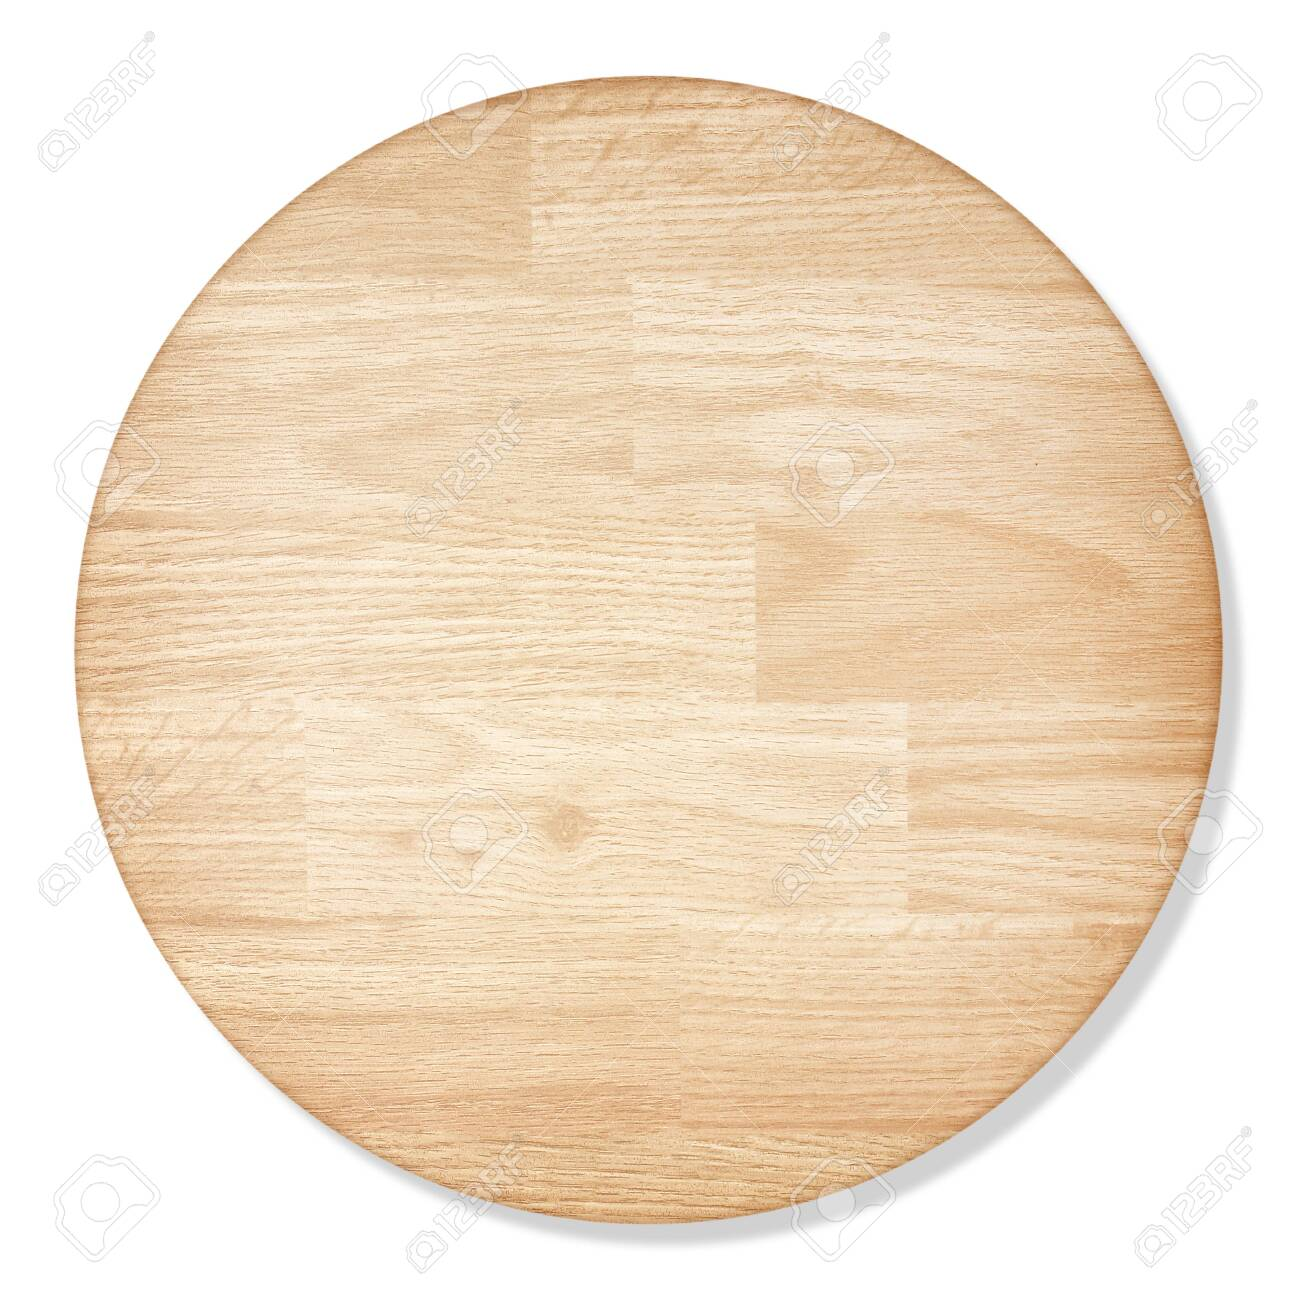 round wooden cutting Board isolated on white background with - 148974063